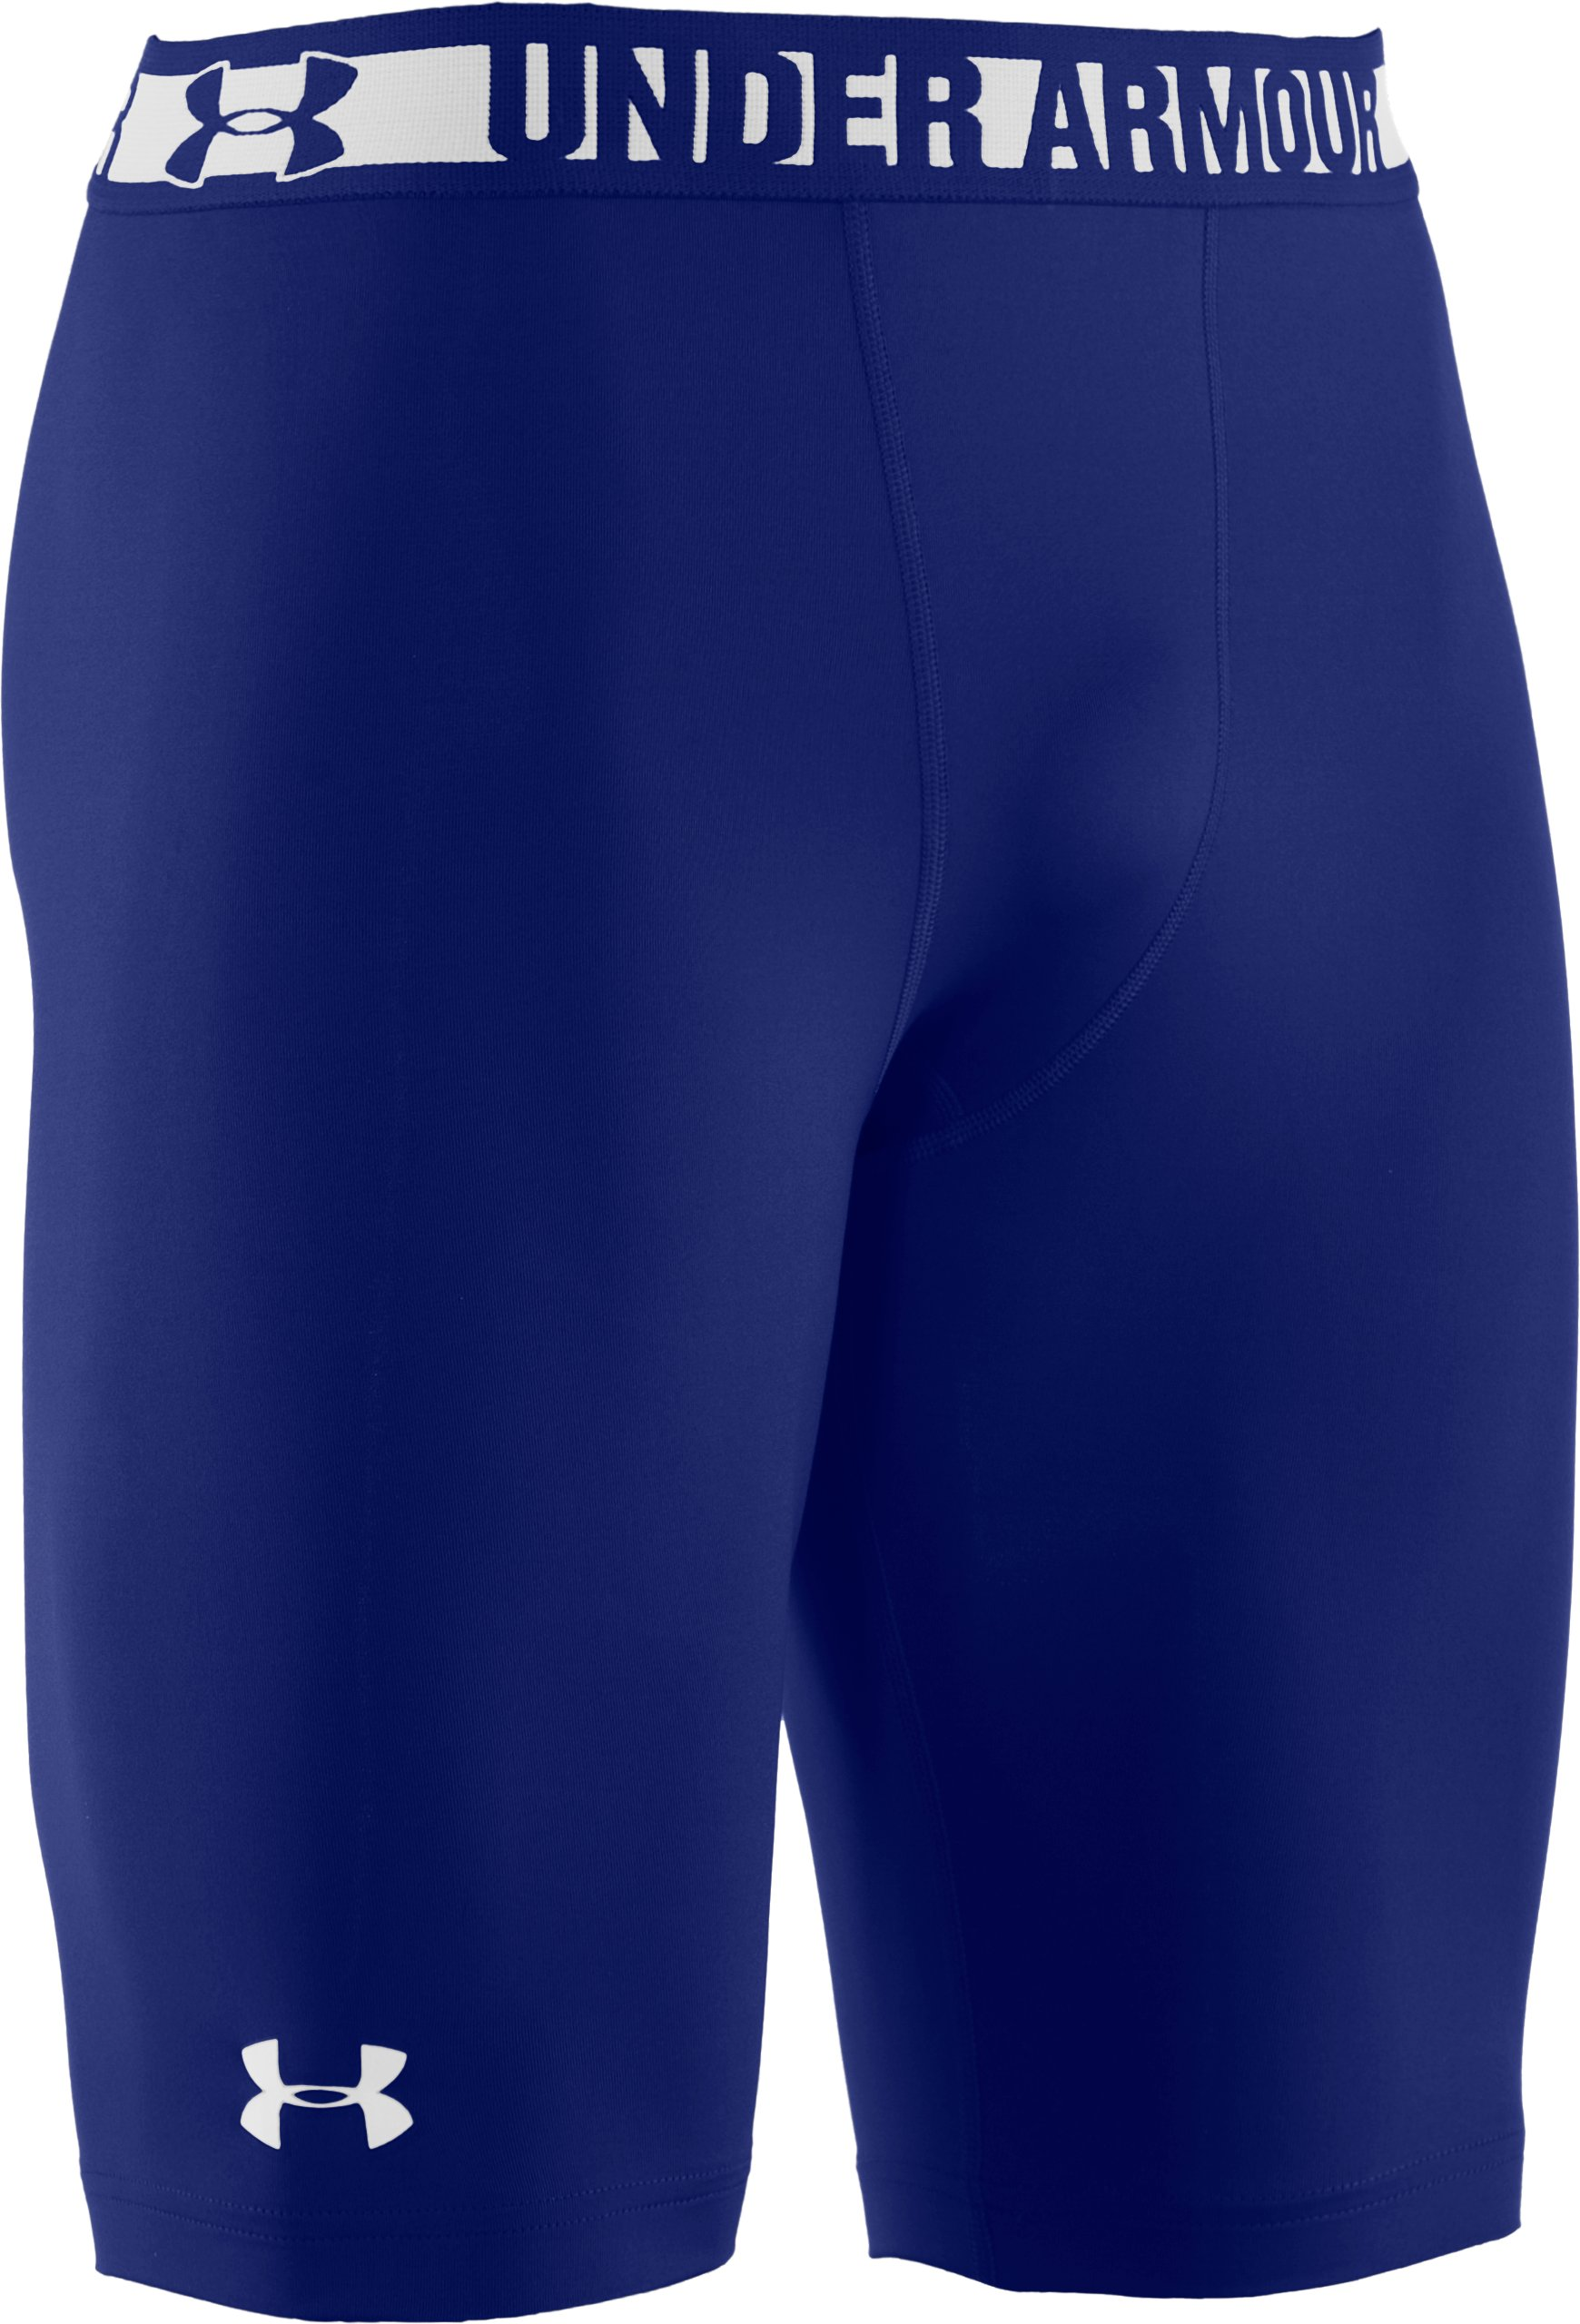 Men's HeatGear® Sonic Long Compression Shorts, Royal, undefined